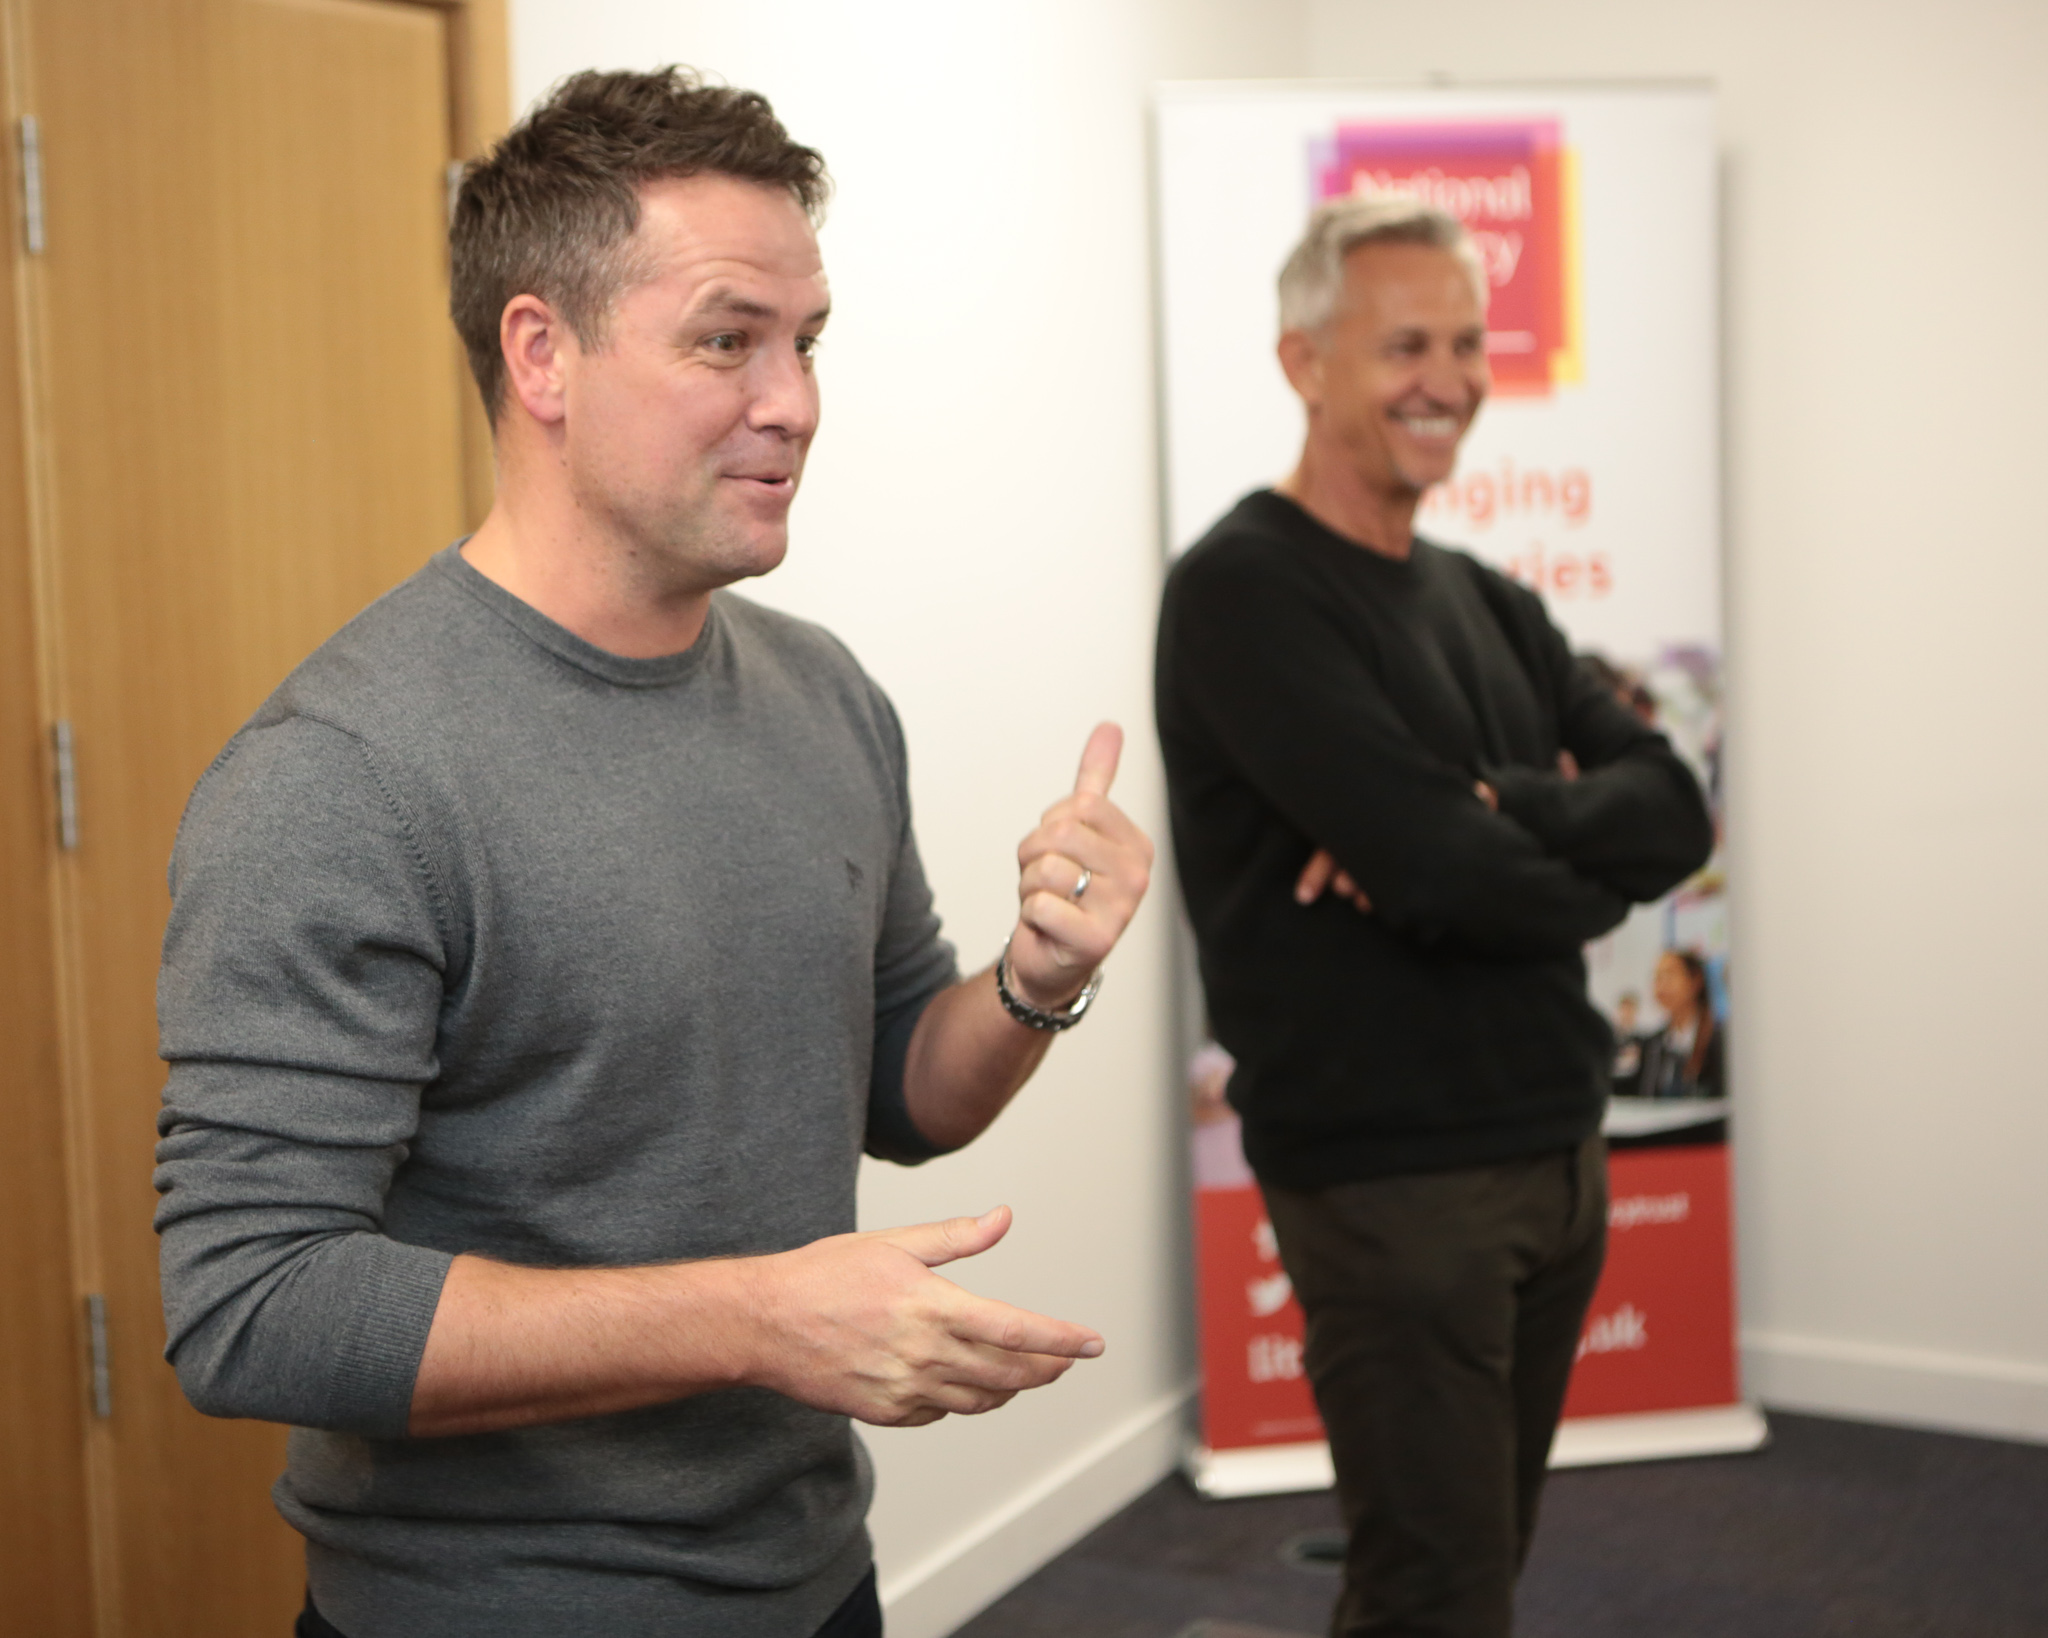 Michael Owen and Gary Lineker at the Sports Book Awards event for The National Literacy Trust